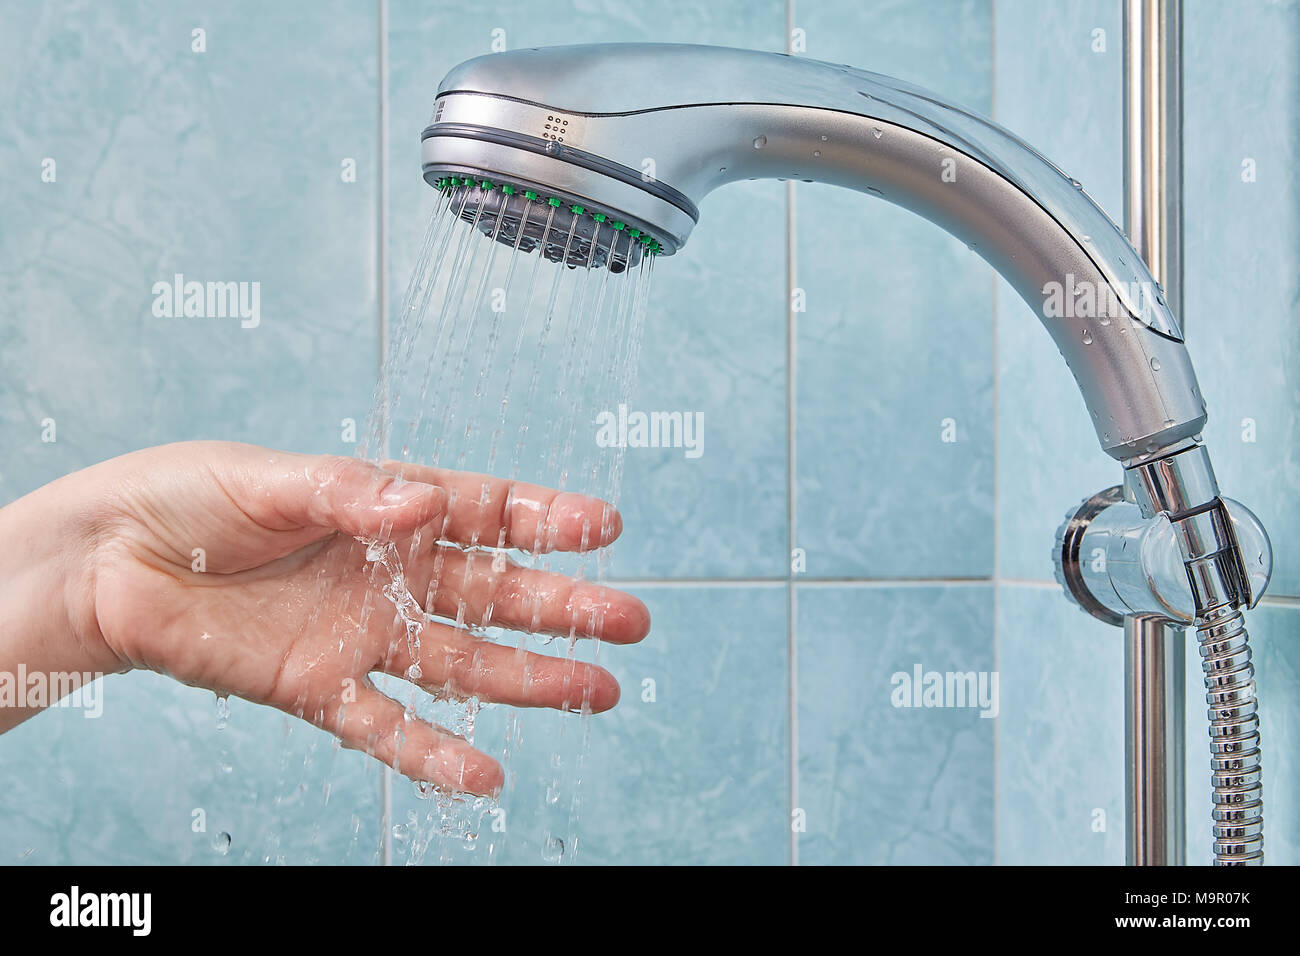 Hand Shower Holder Stock Photos & Hand Shower Holder Stock Images ...